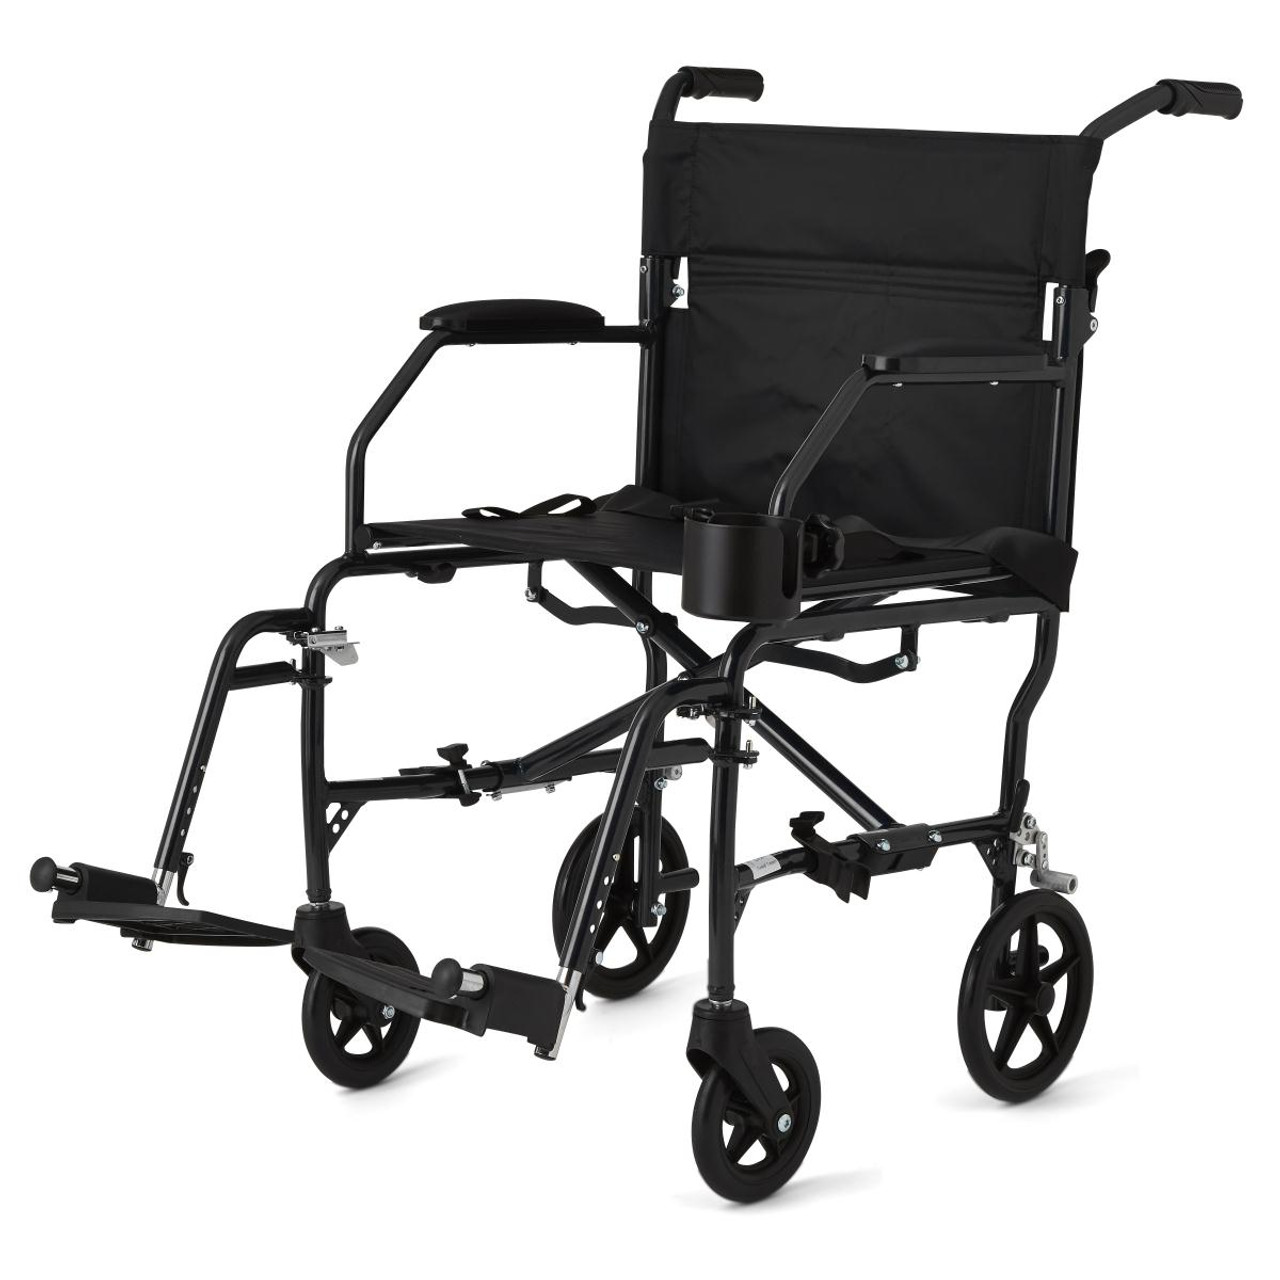 Medline Ultralight Transport Wheelchair black